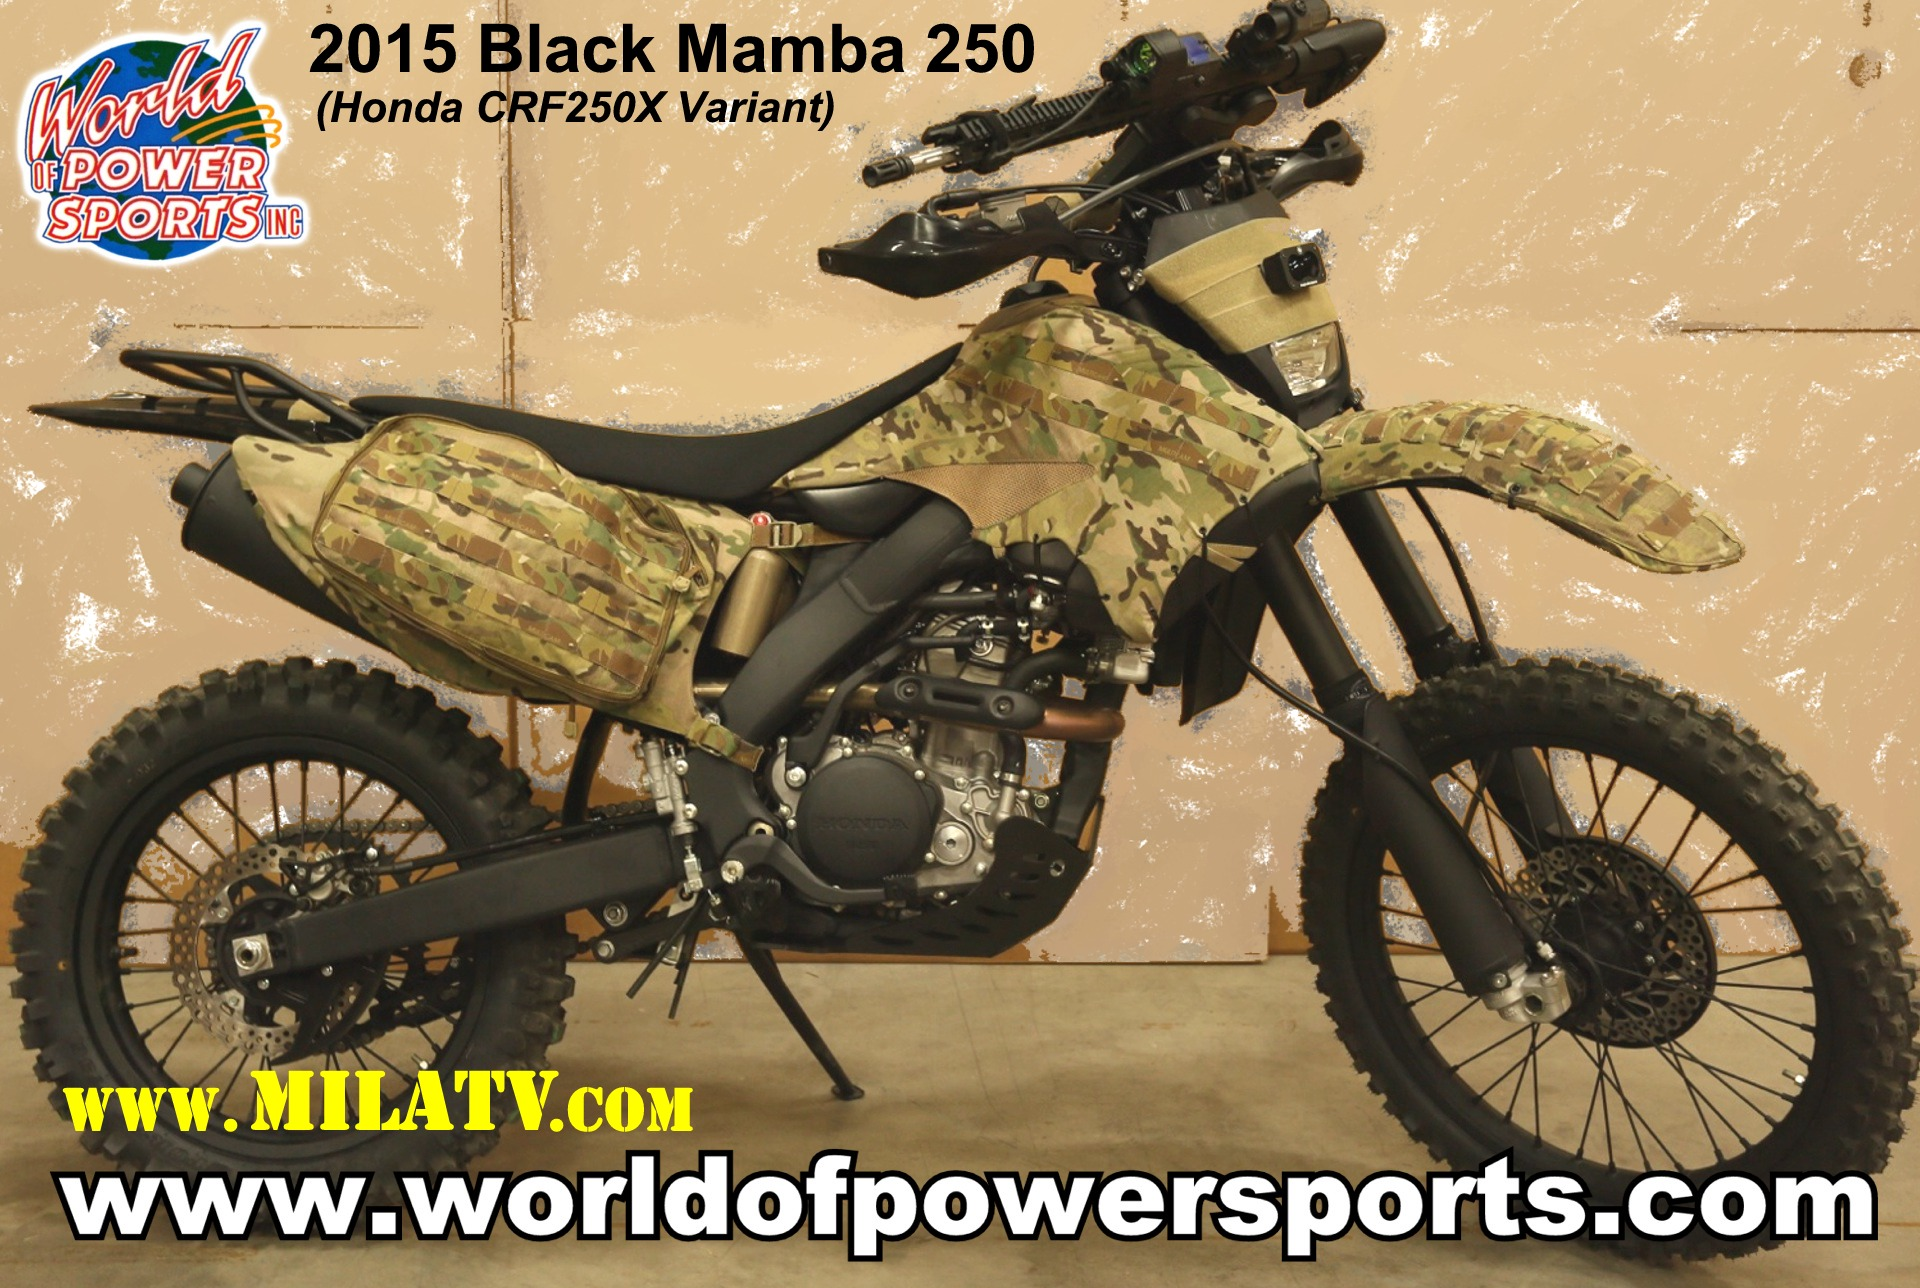 Black Mamba 250 - Special Operations Motorcycle launched